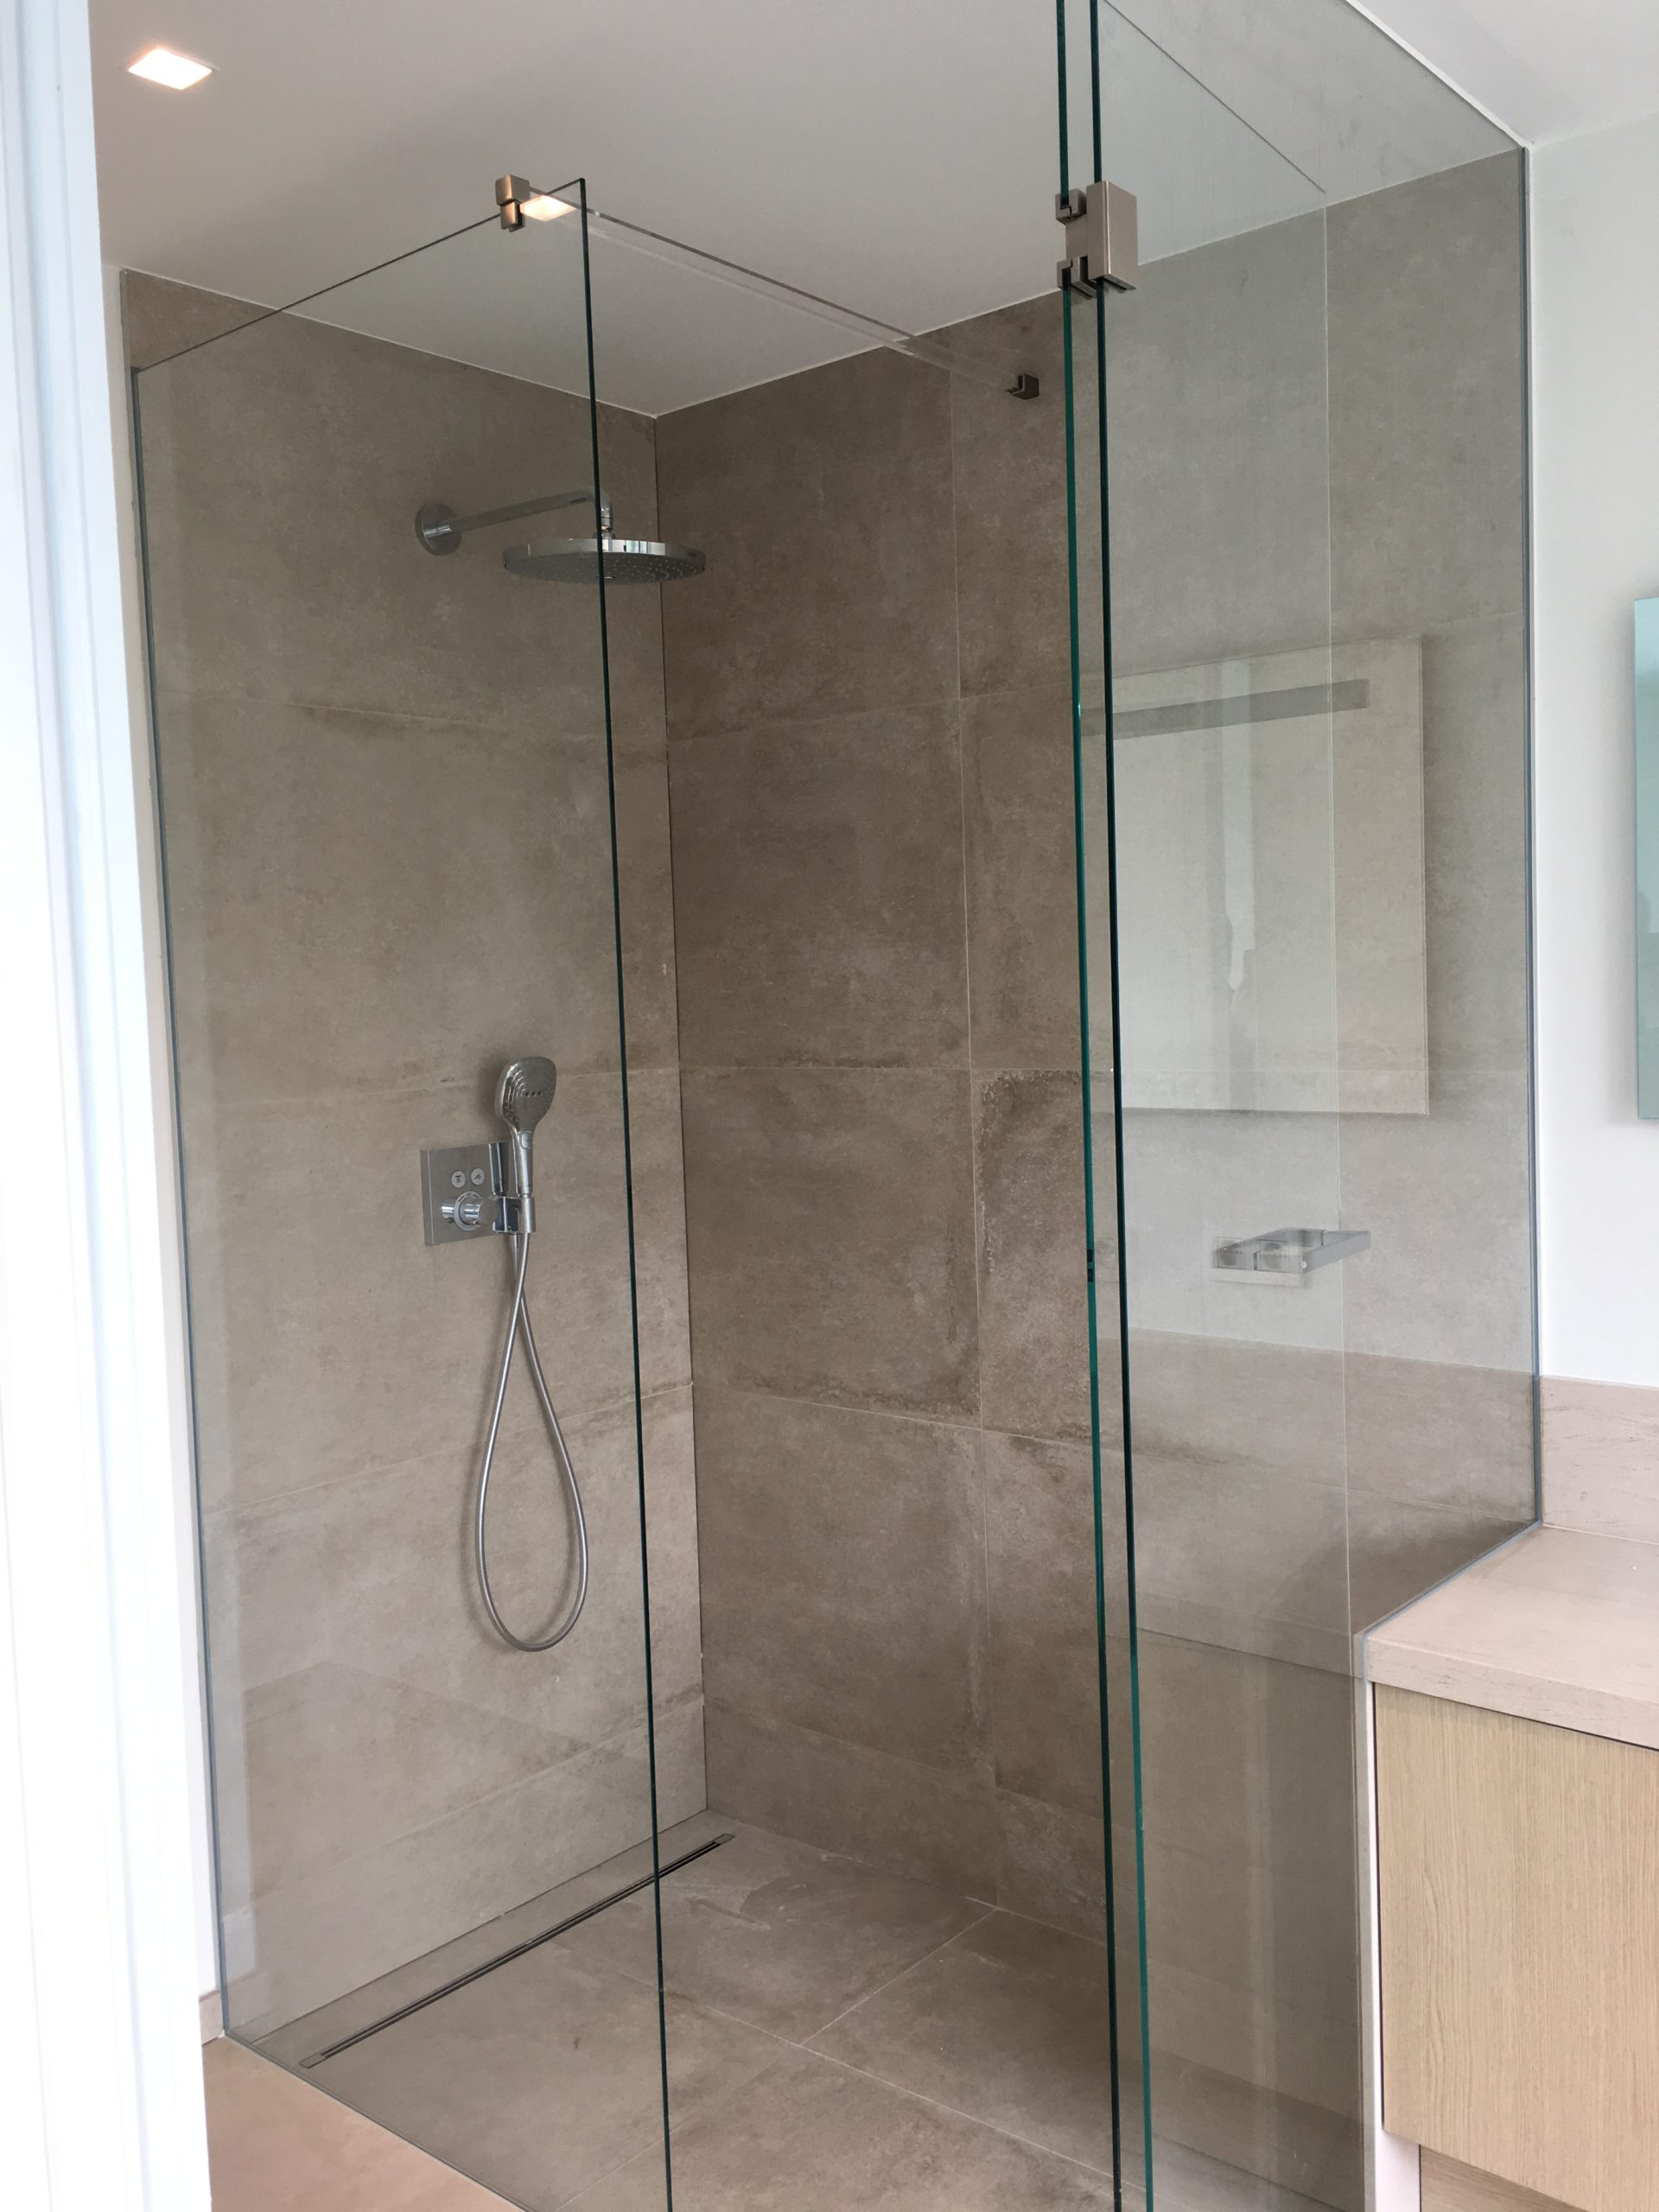 Miroiterie Leys and Fils - Installation ensemble de douche